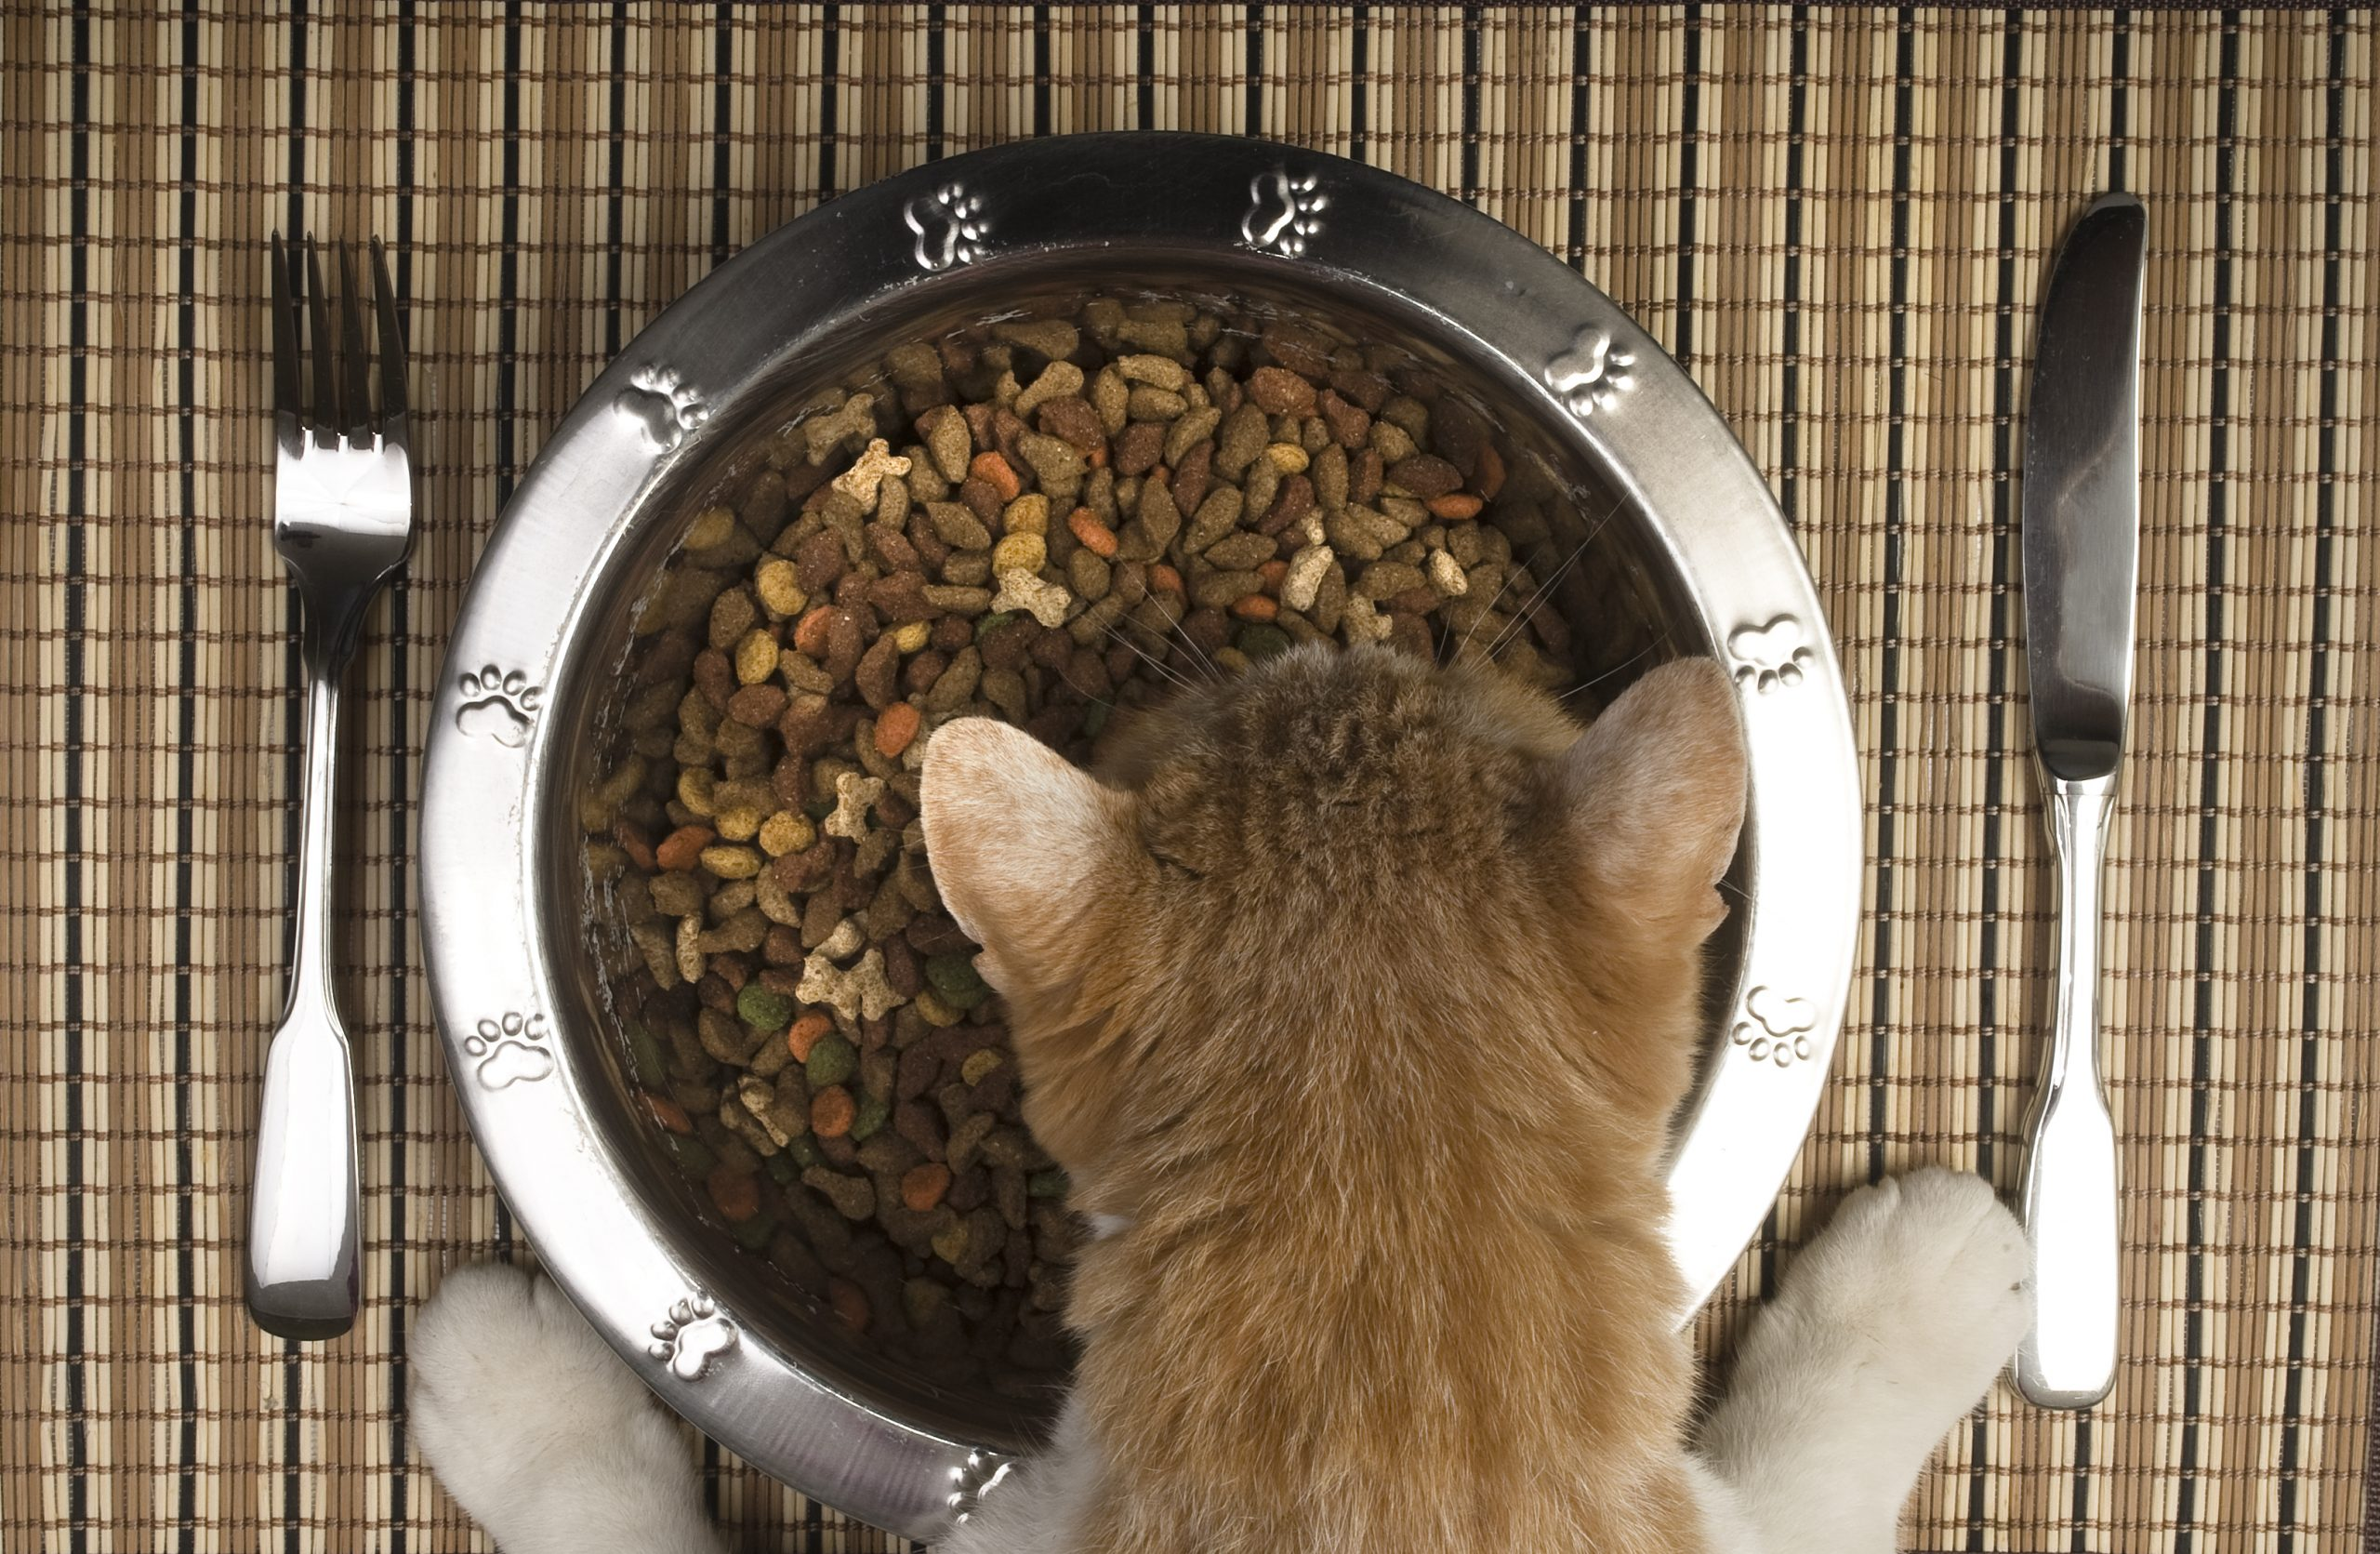 Accepted: Cat and dog food